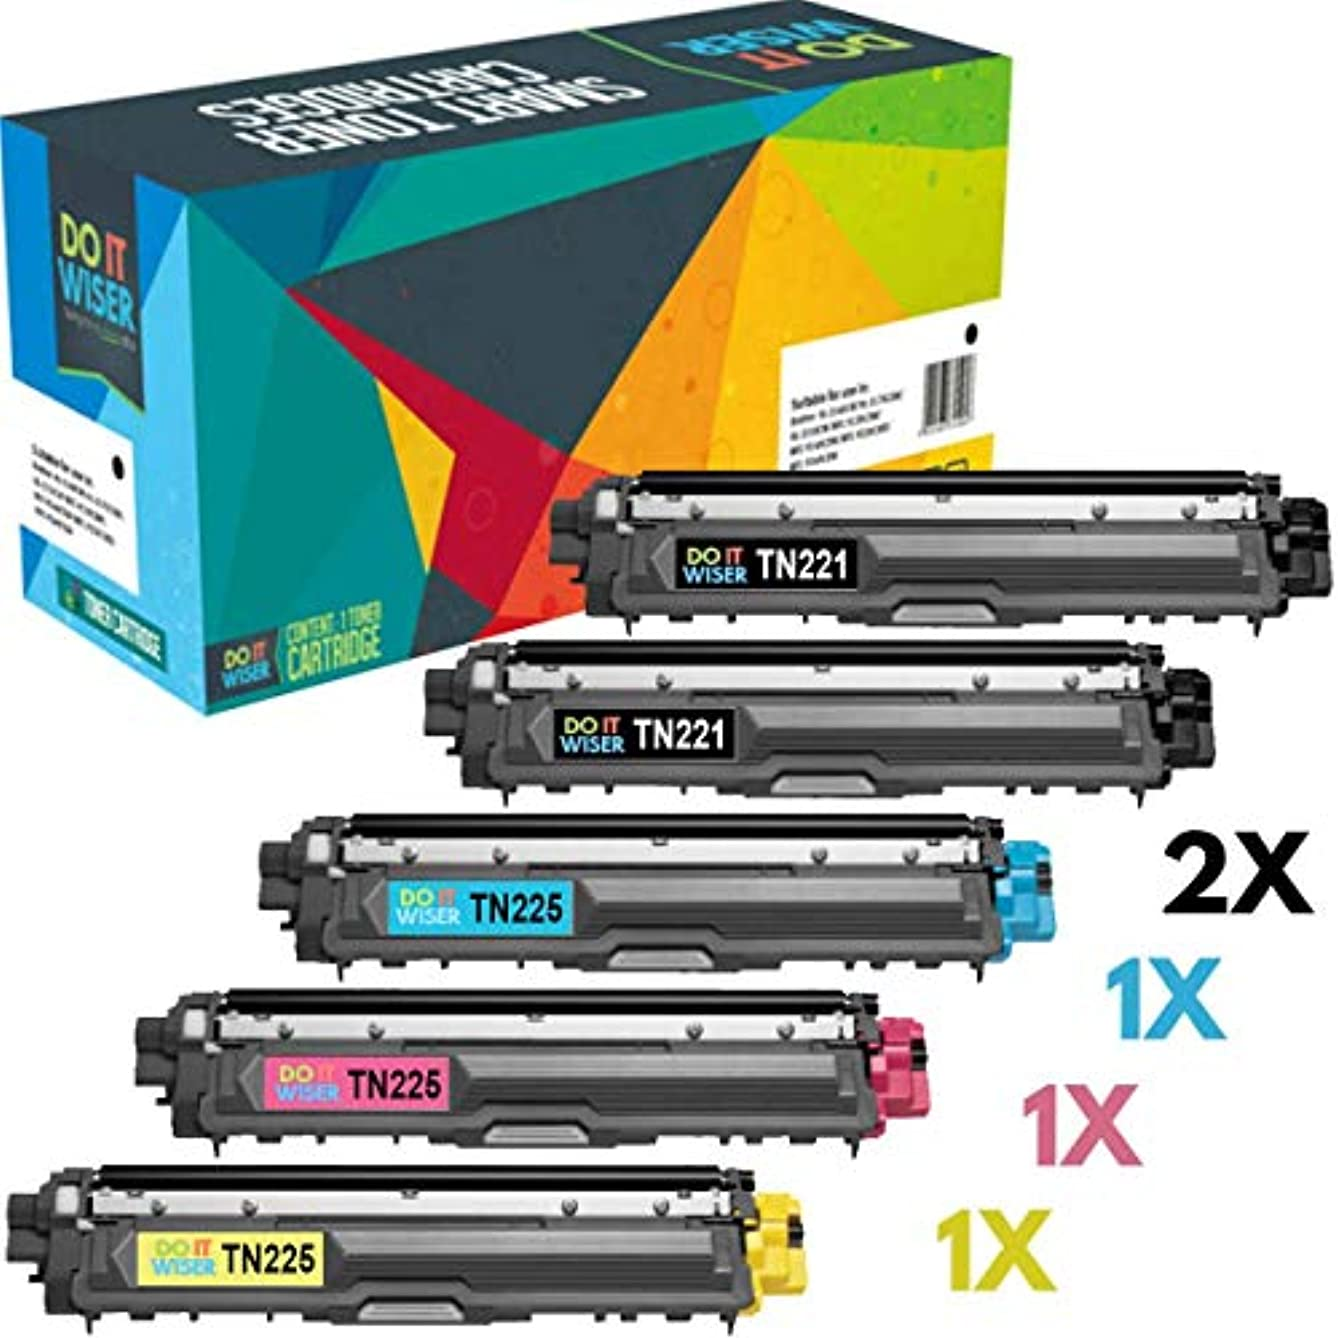 Do it Wiser Compatible Toner Cartridge Replacement for Brother TN221 TN225 to use with Brother HL-3170CDW MFC-9340CDW MFC-9130CW MFC-9330CDW HL-3140CW HL-3180 (2 Black, Cyan, Magenta,Yellow) 5-Pack